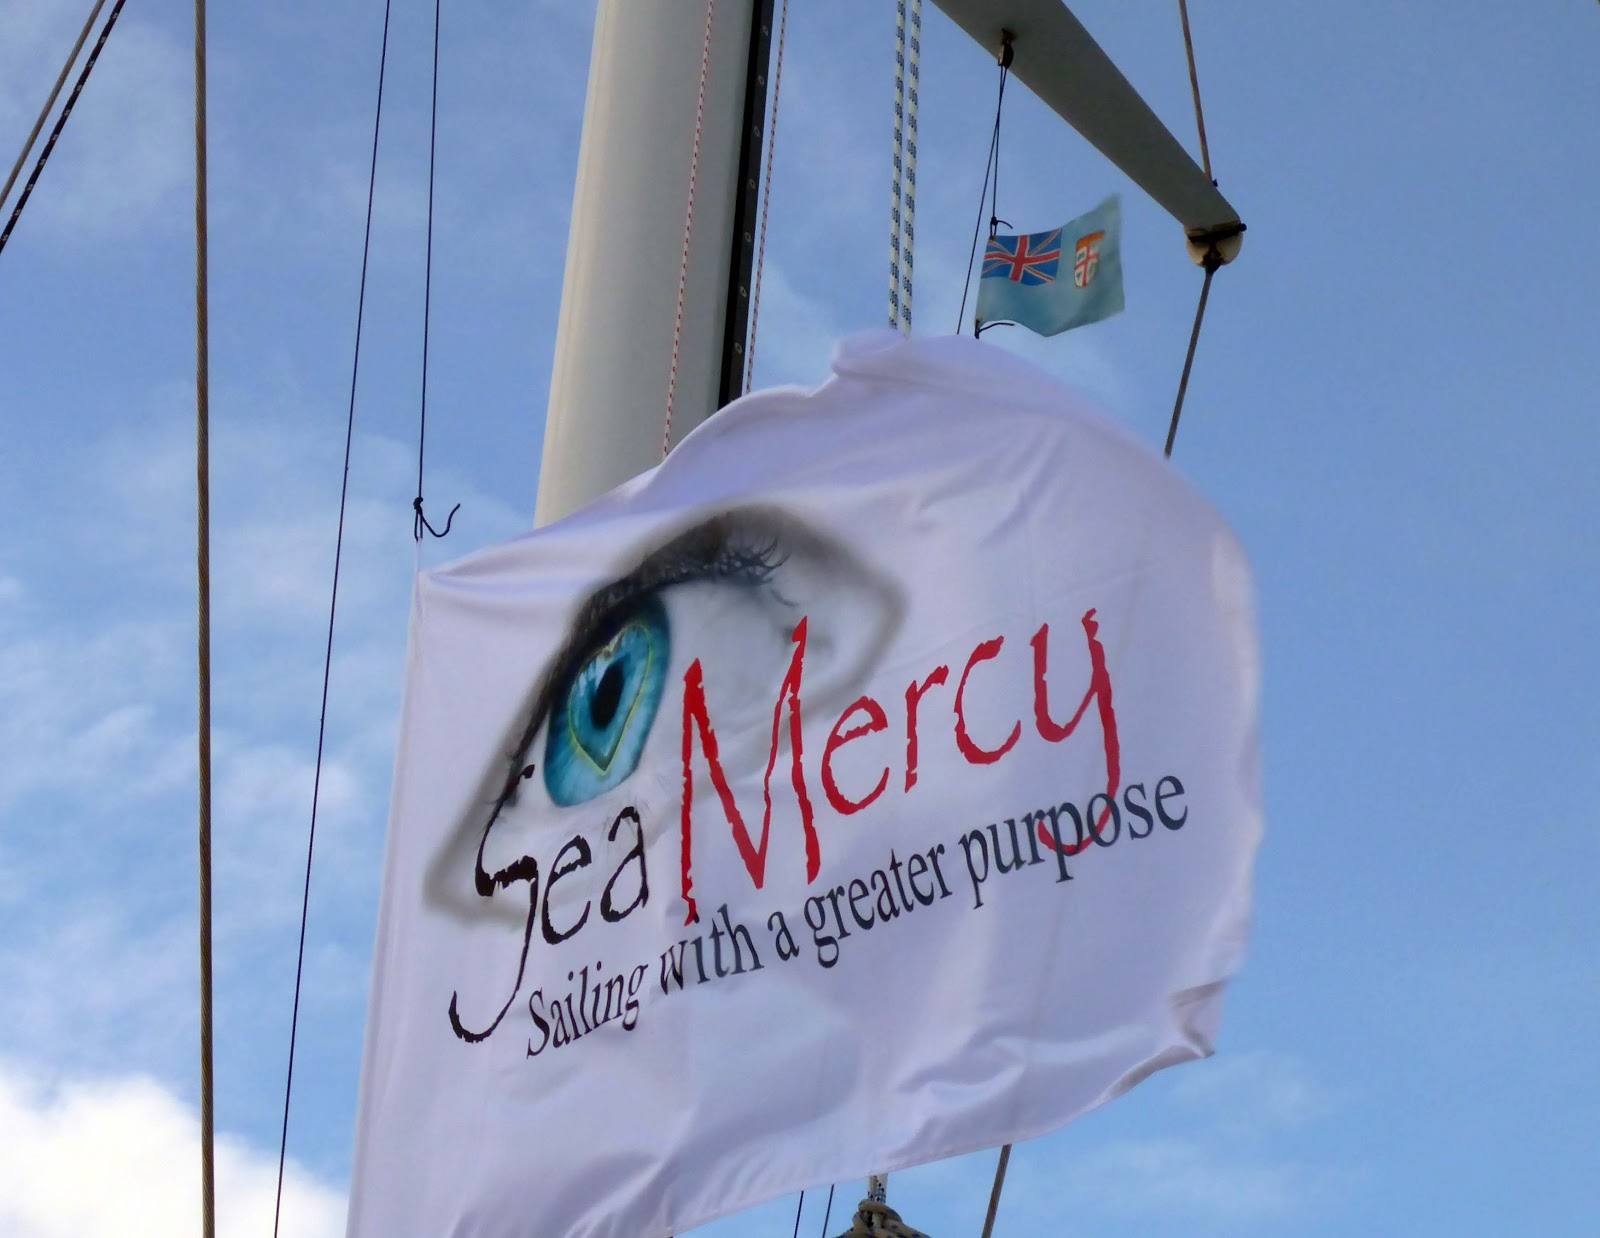 How This Sea Mercy Charity is Helping Remote Islanders around the South Pacific Ocean